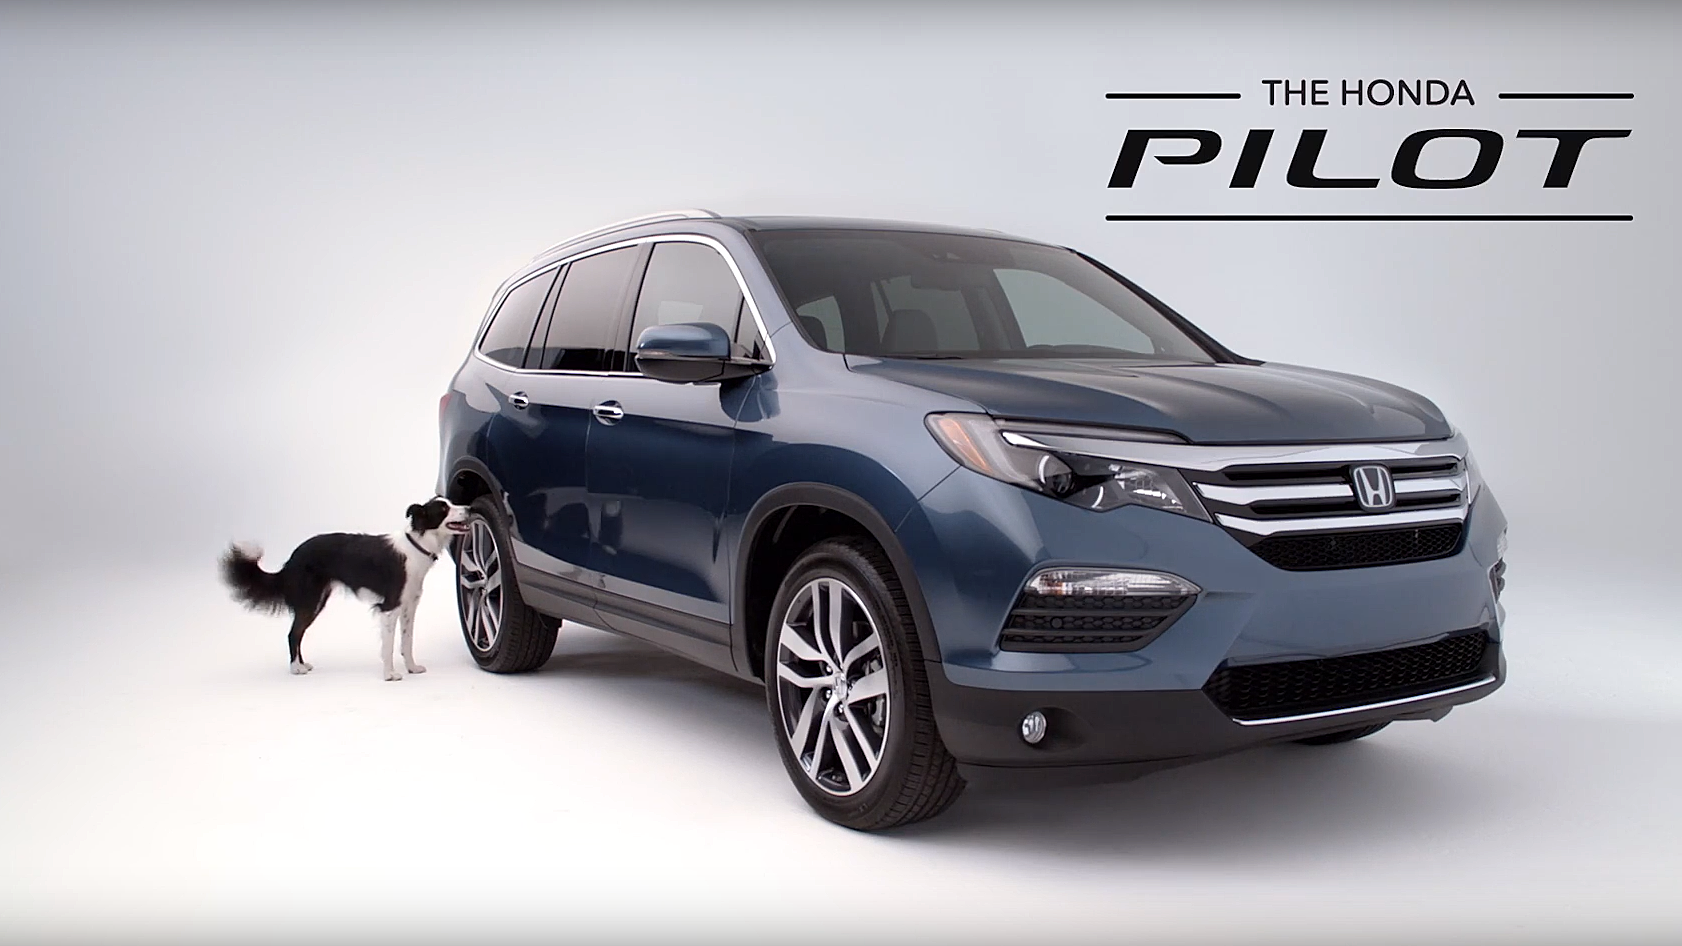 2008 Honda Pilot Owners Manual Pdf